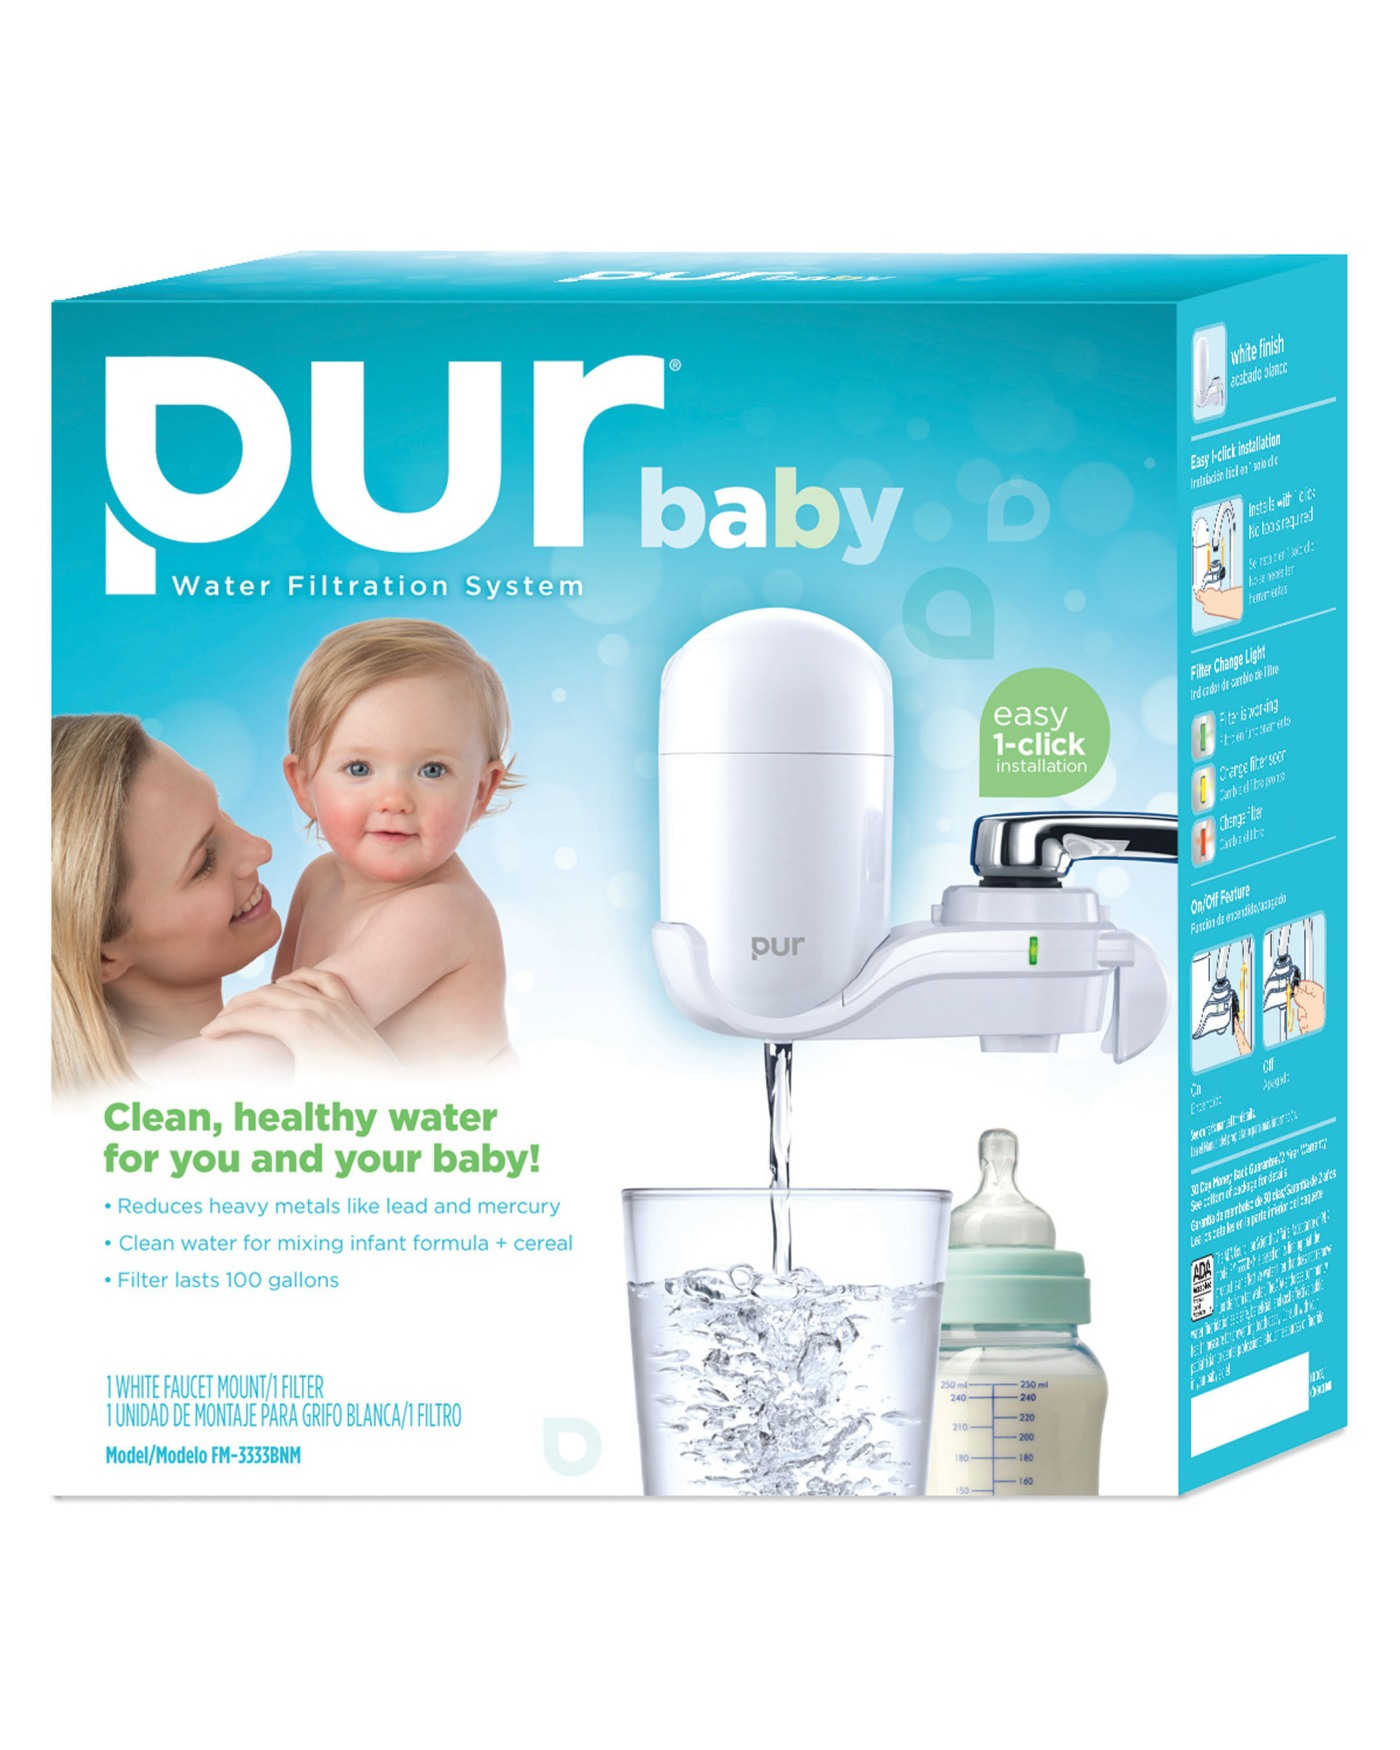 PUR Water Unveils PUR Baby Water Filtration System – THE HOTSPOTORLANDO